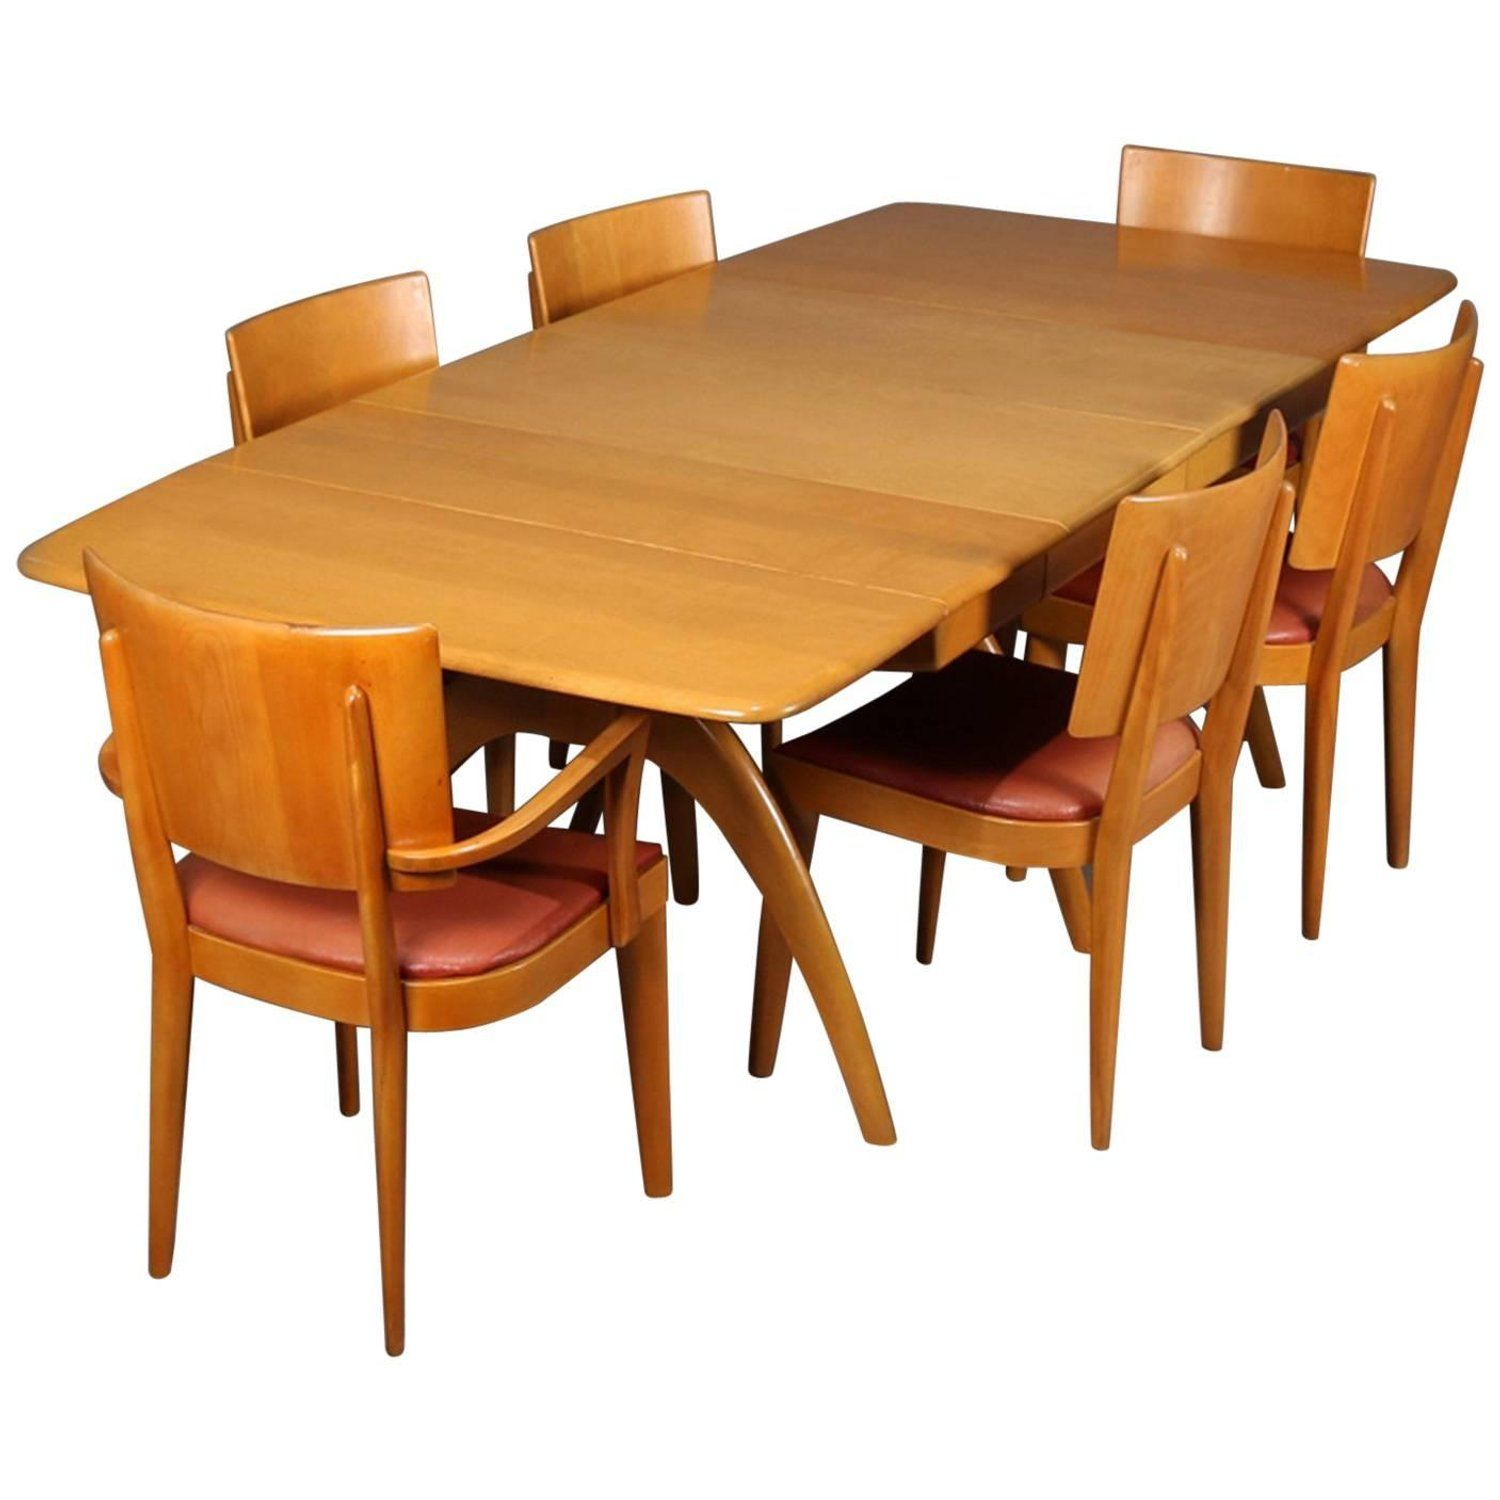 Heywood Wakefield Dining Chairs Mid Century Modern Wishbone Dining Table Set By Heywood Wakefield